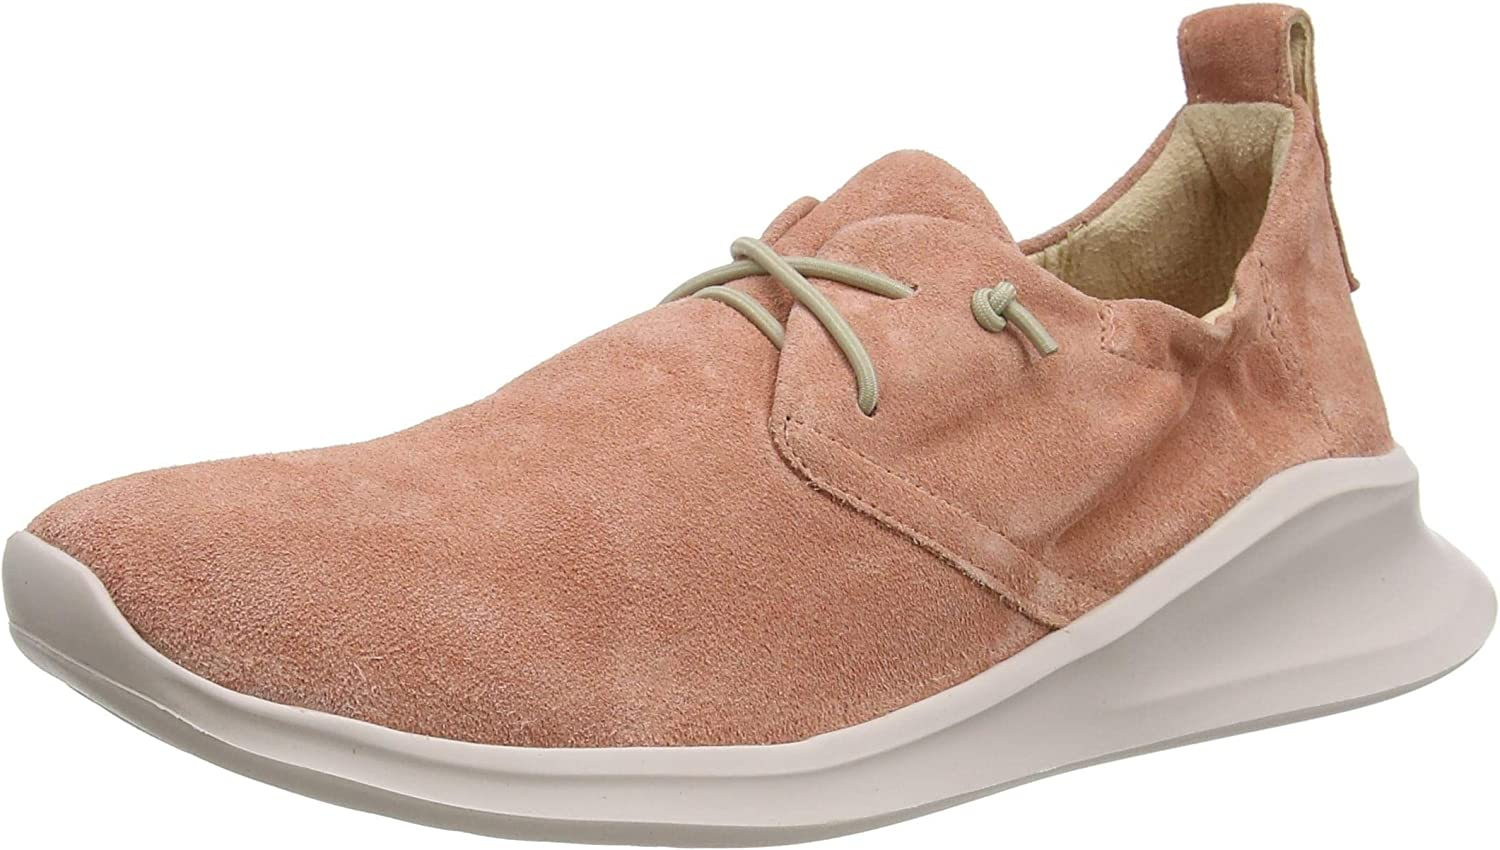 Think! Women's Loafer